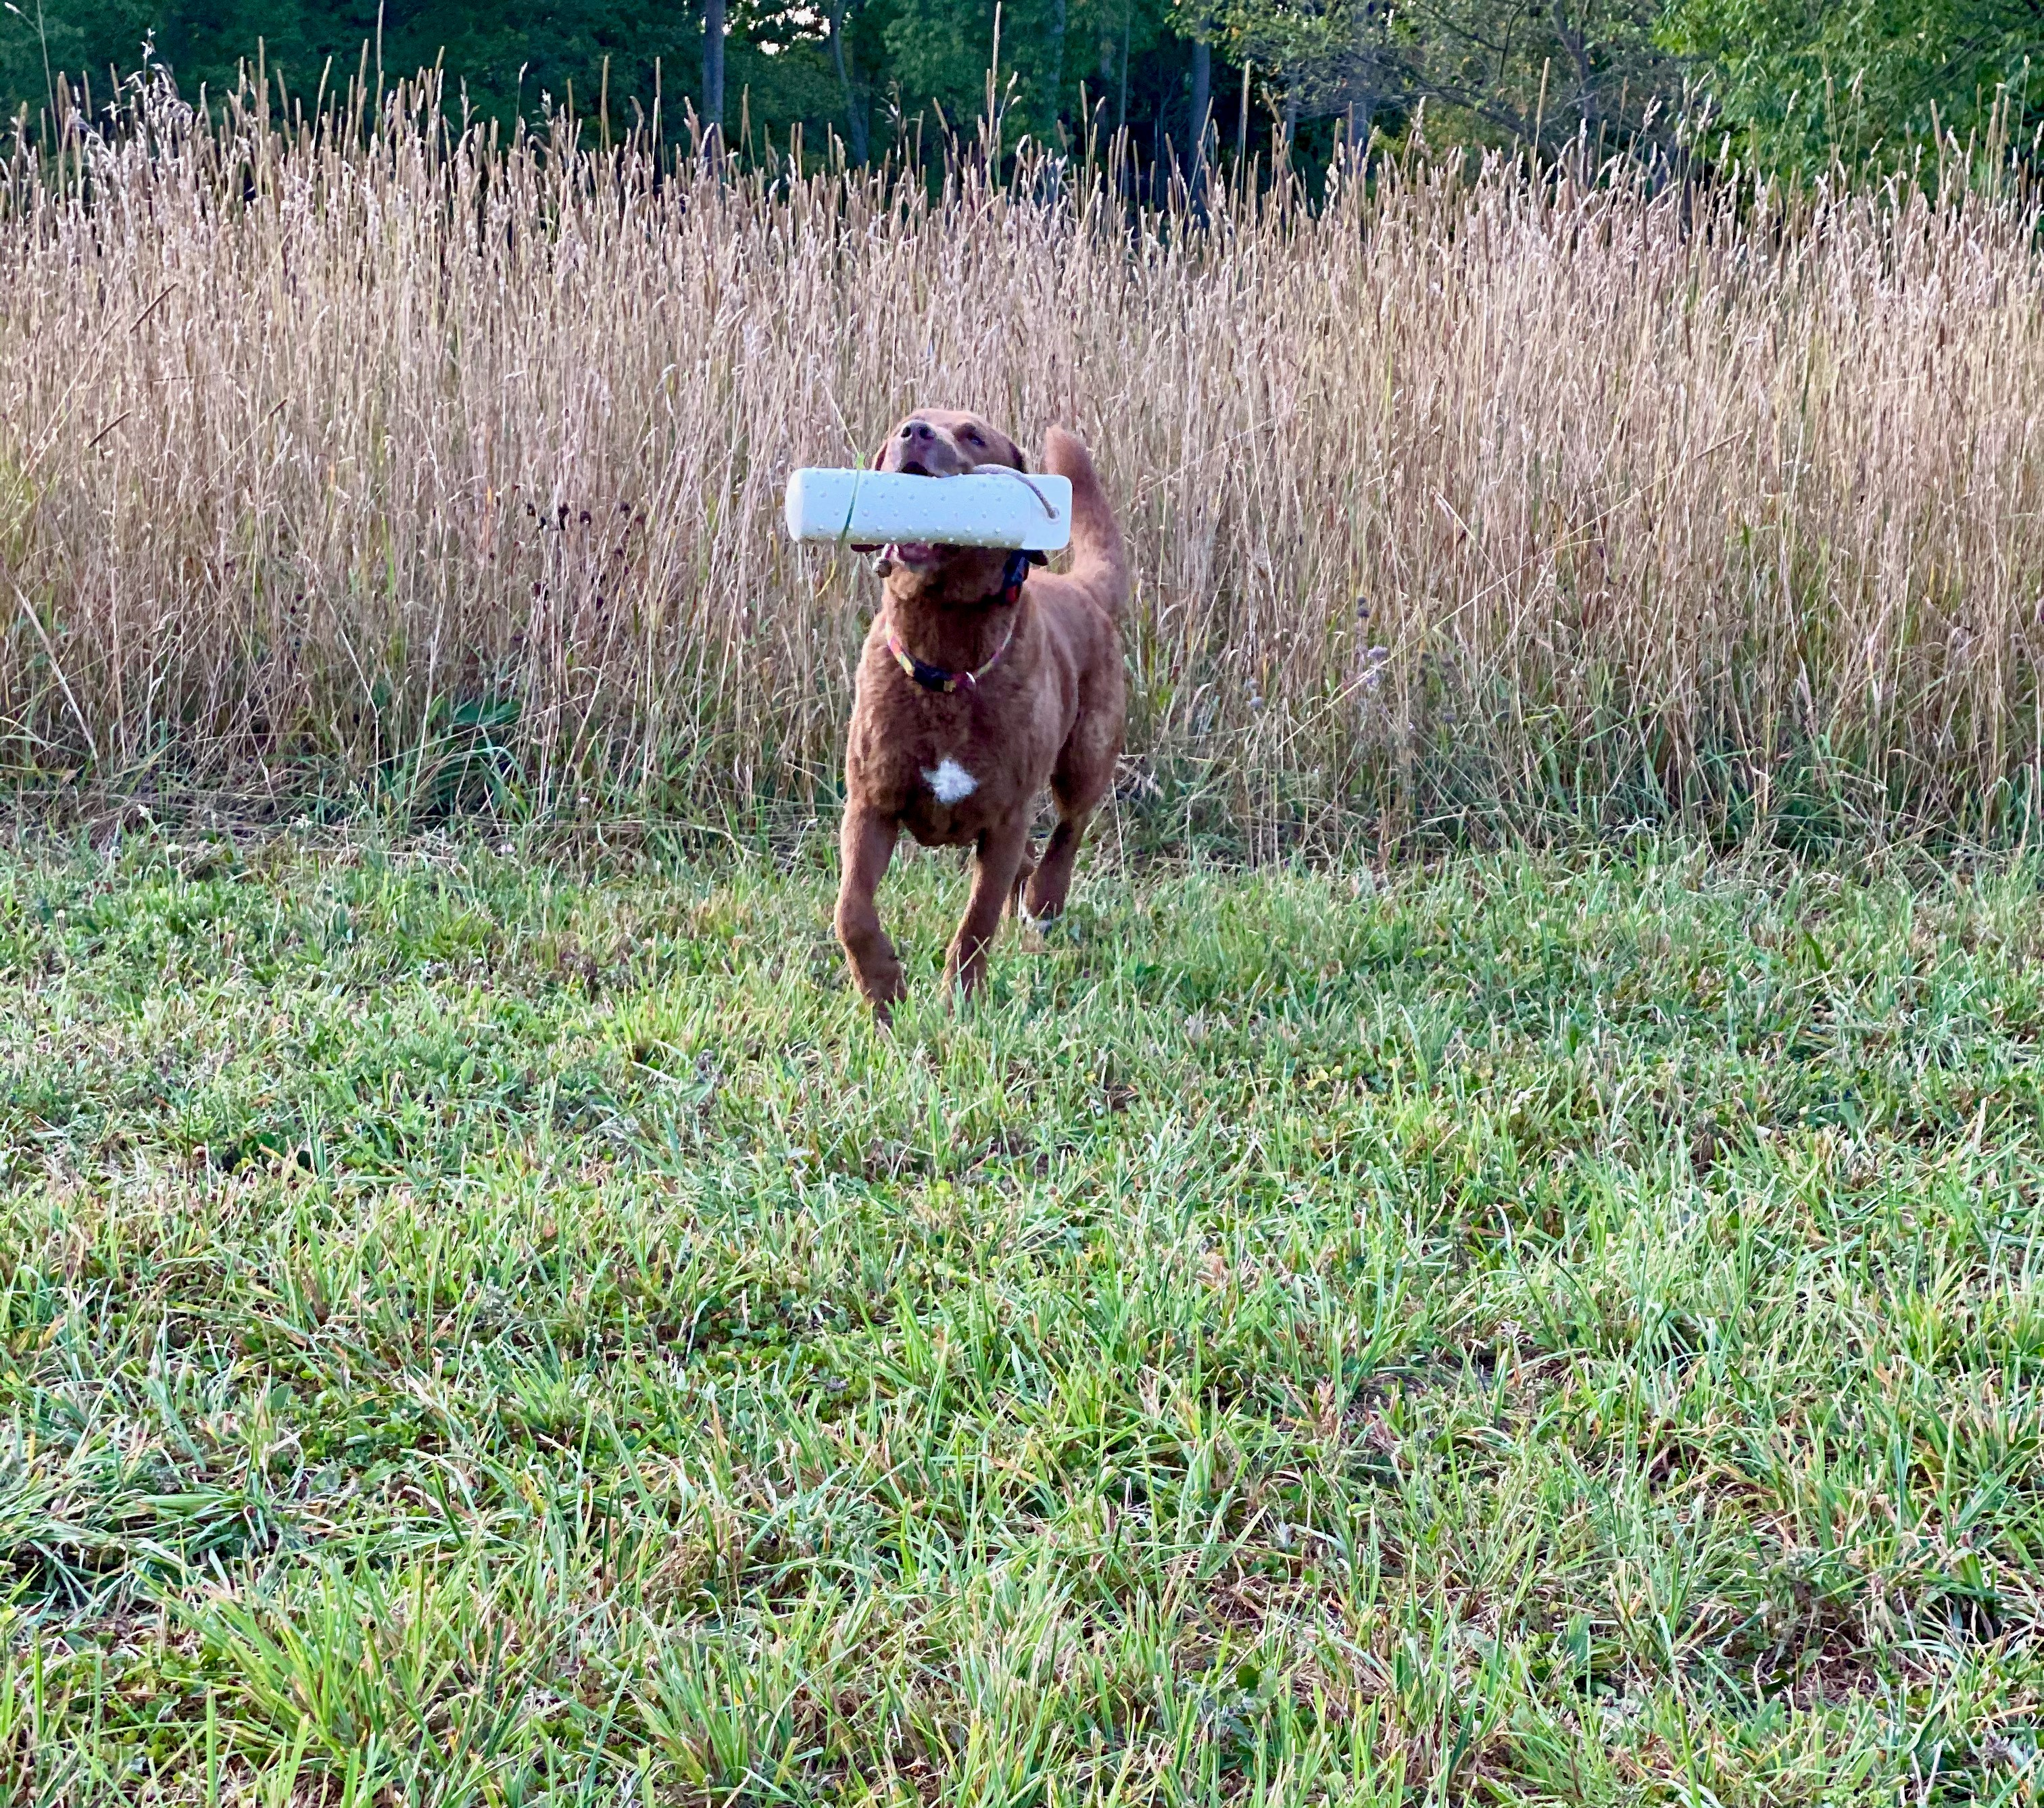 A chesapeak retriever performing field trial work.